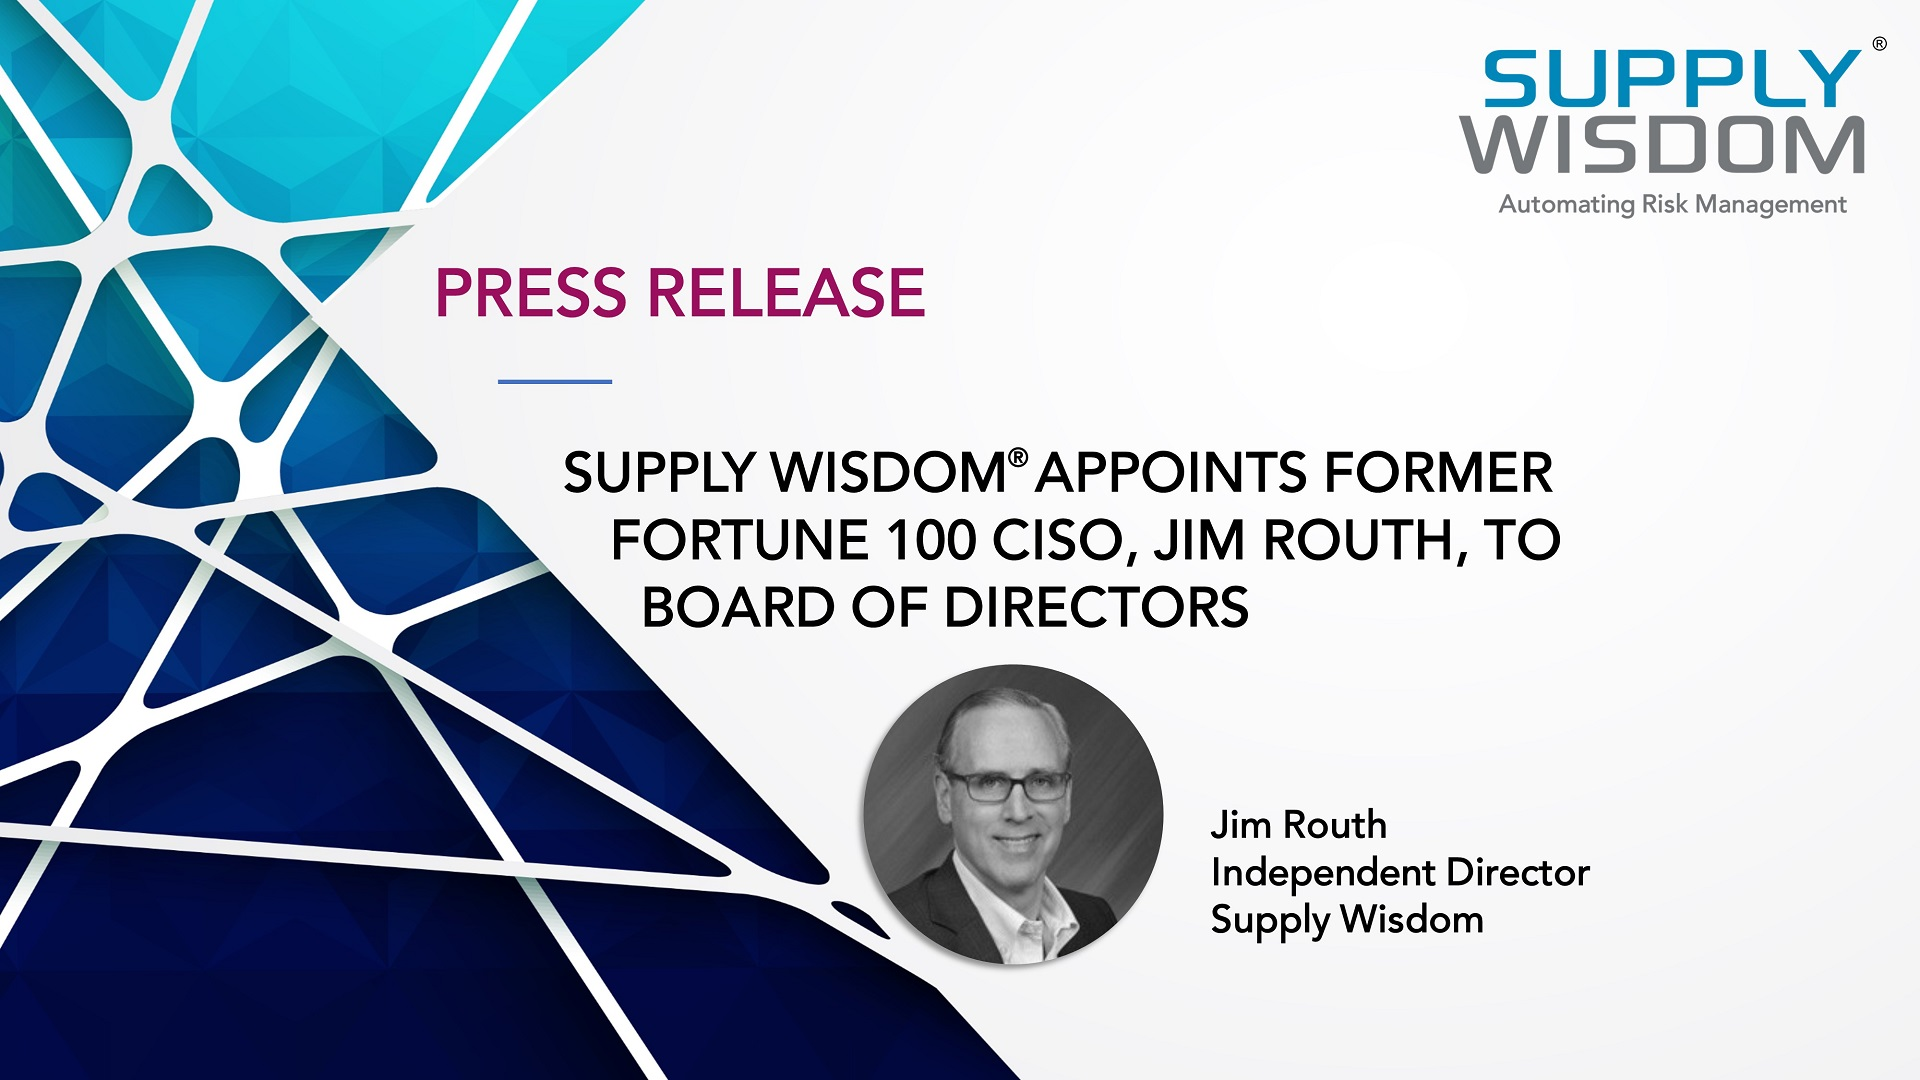 Supply Wisdom Appoints Former Fortune 100 CISO, Jim Routh, to Board of Directors